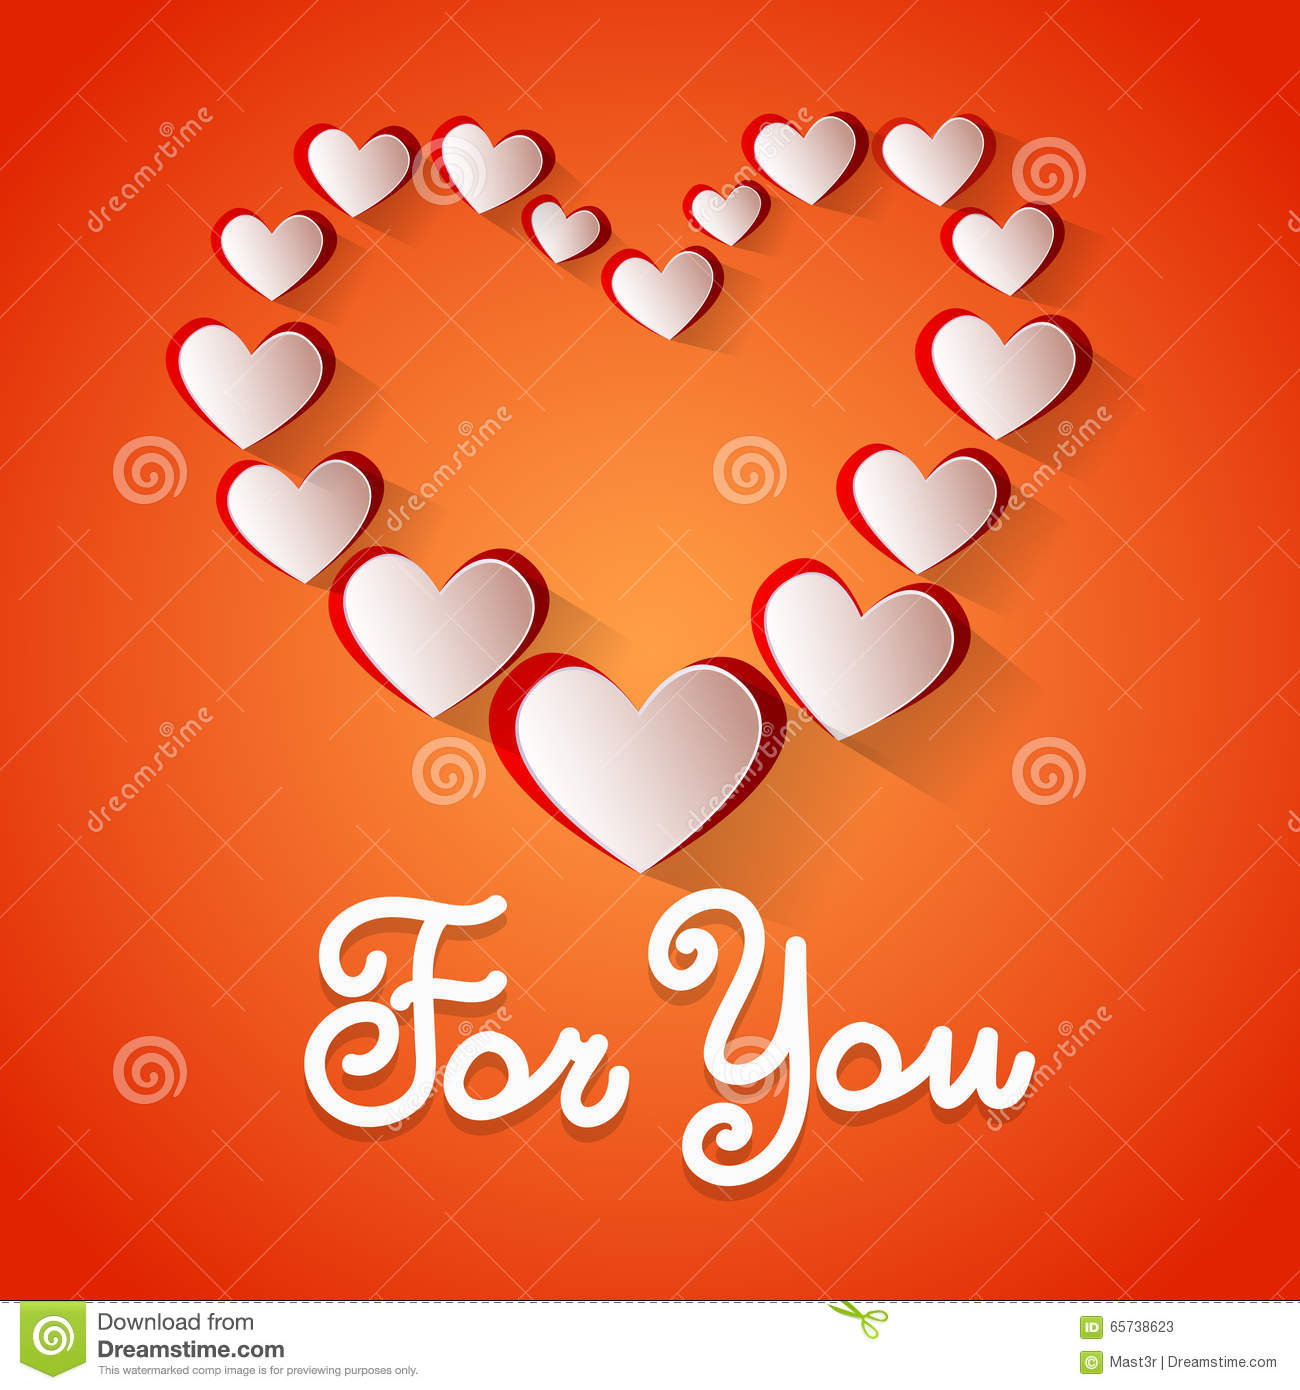 Love You Heart Shape Valentine Day Greeting Card Vector – Heart Shaped Valentine Cards